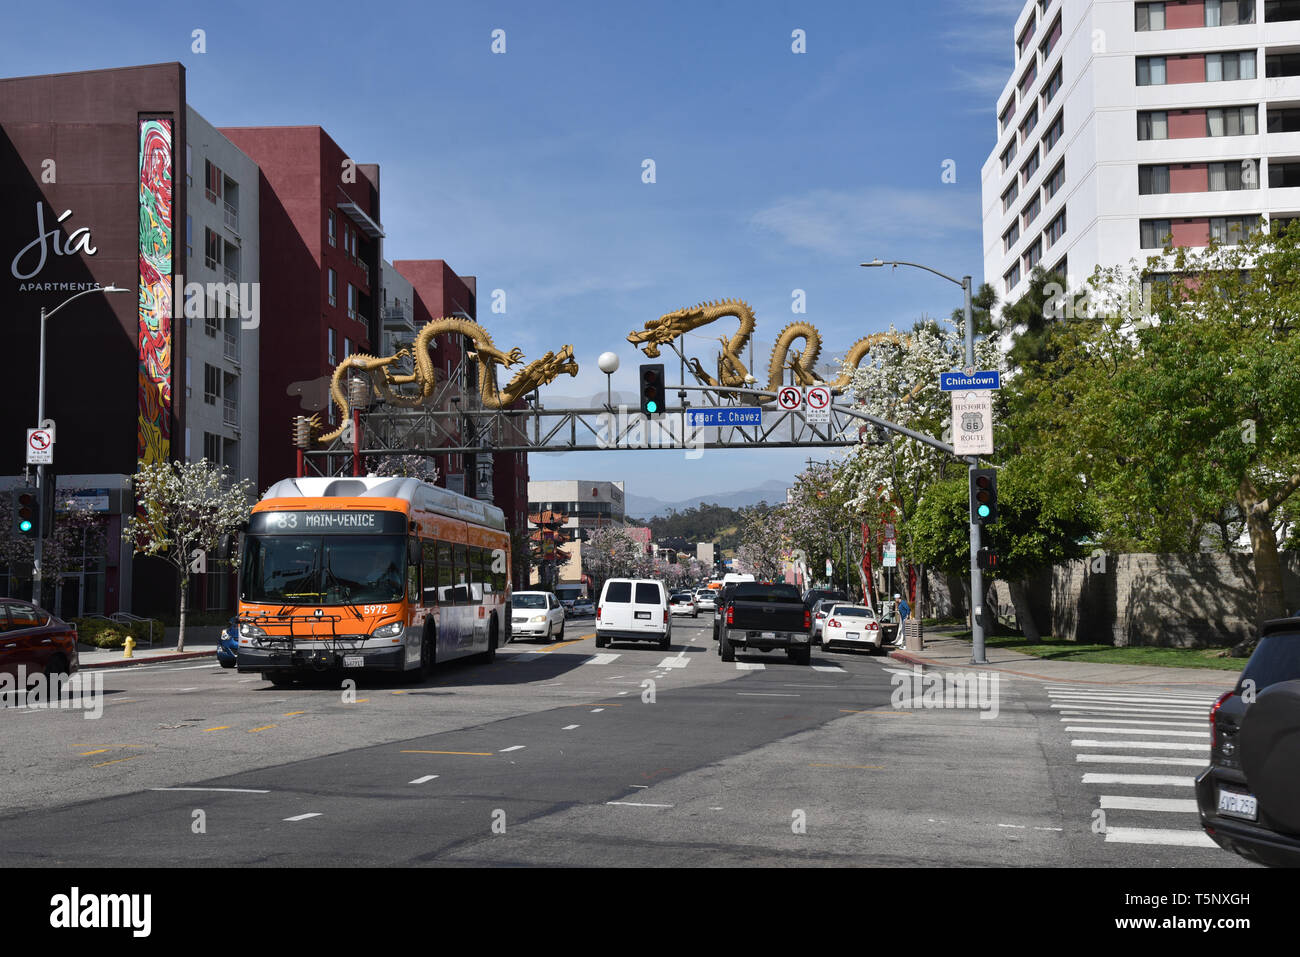 LOS ANGELES, CA/USA  - APRIL 14, 2019: The Dragon Gate entrance to Chinatown Los Angeles was established in 2001.  It was designed by artist Ruppert M - Stock Image